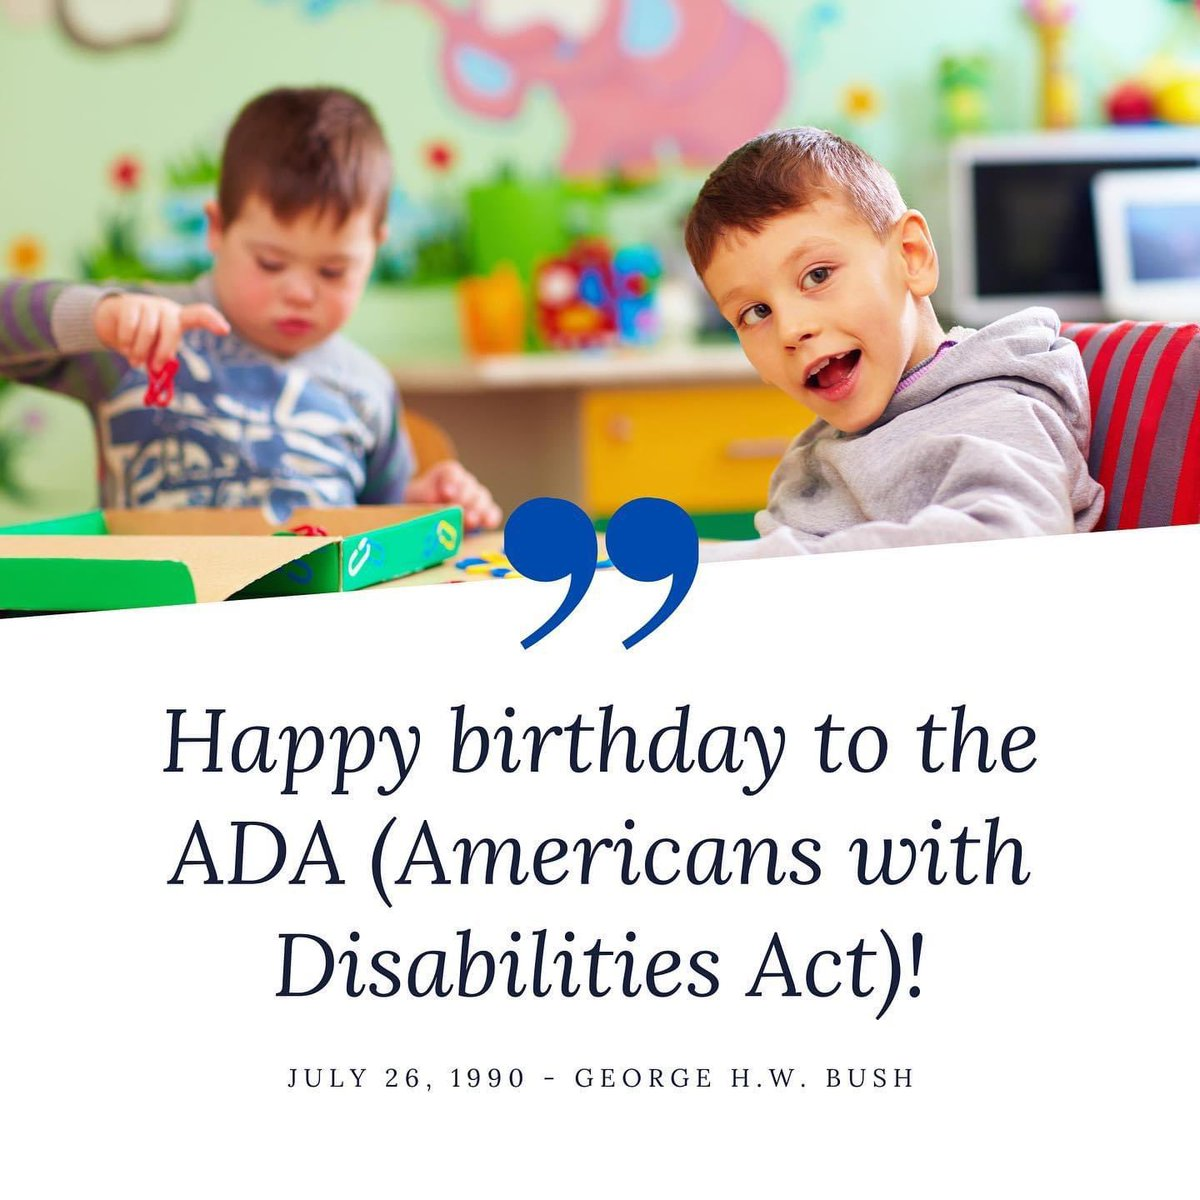 Happy (belated) birthday to the ADA!!!